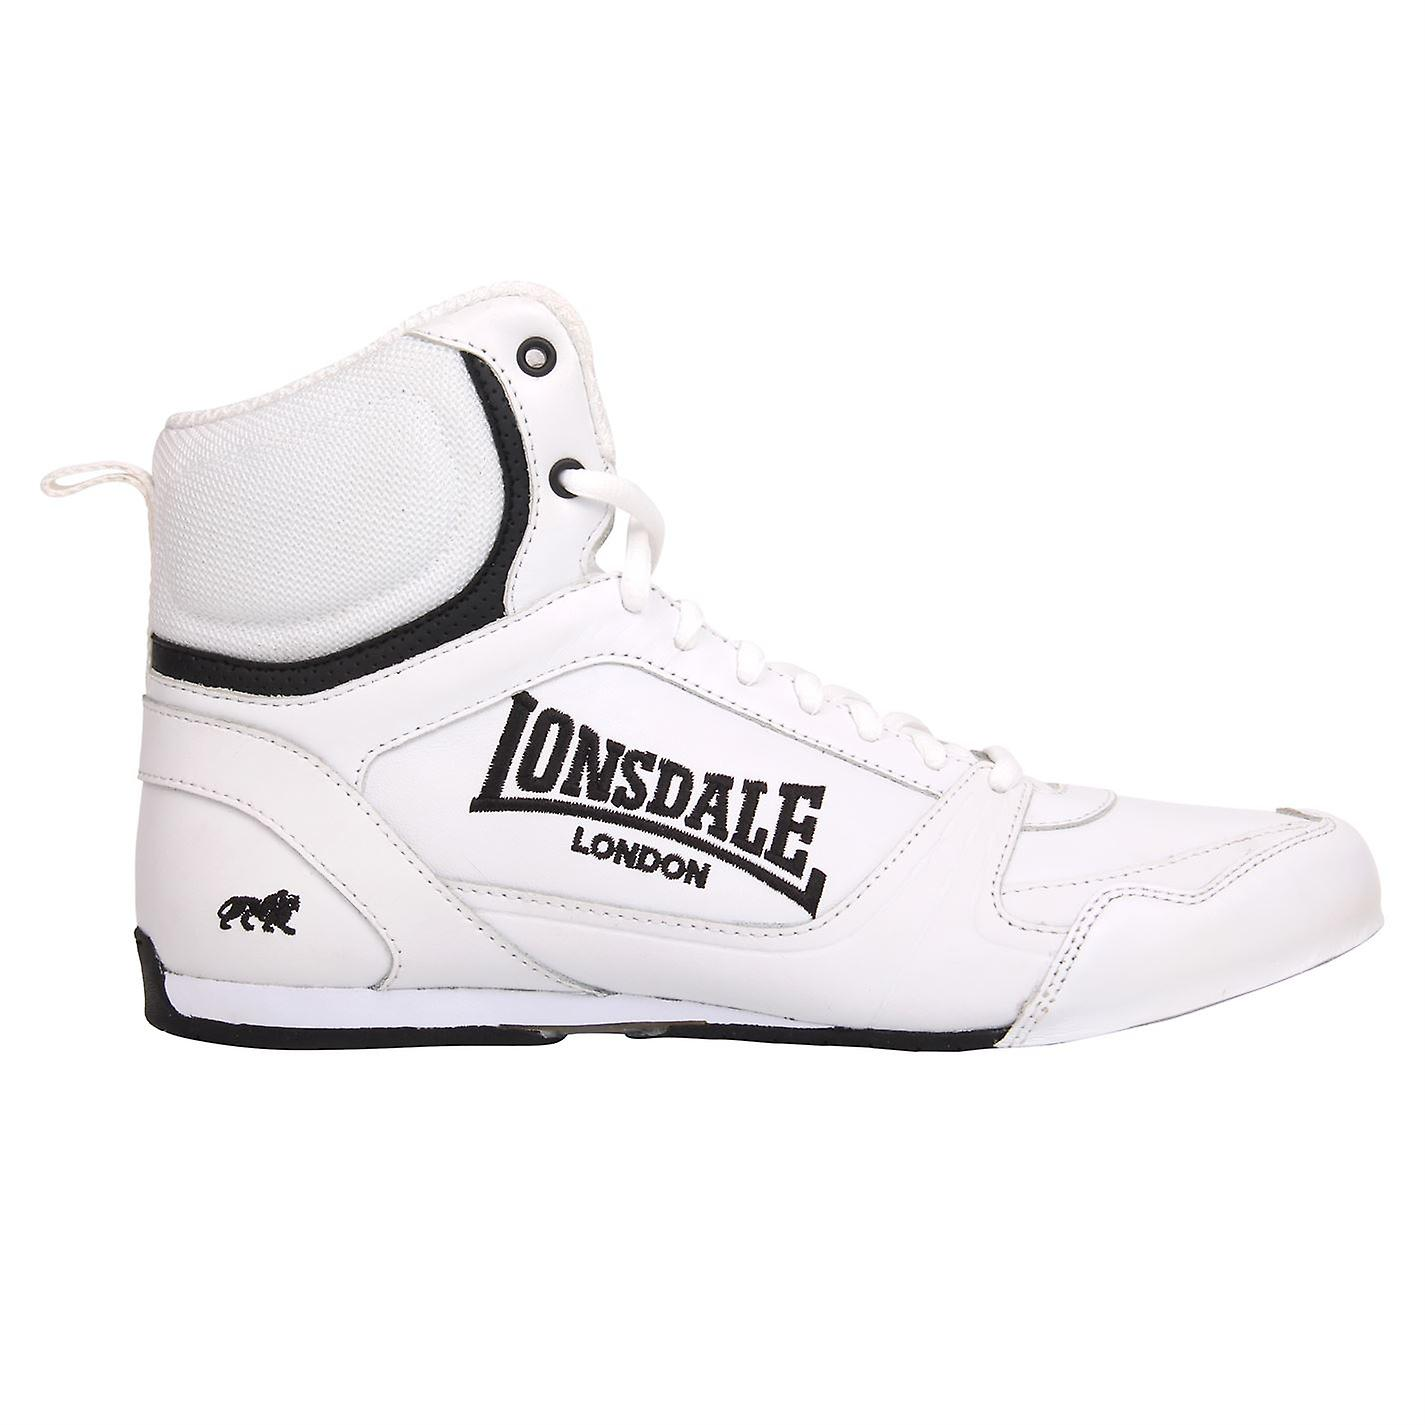 Lonsdale Mens Boxing Stiefel Training Lace Up Schuhe Trainer Sportschuhe